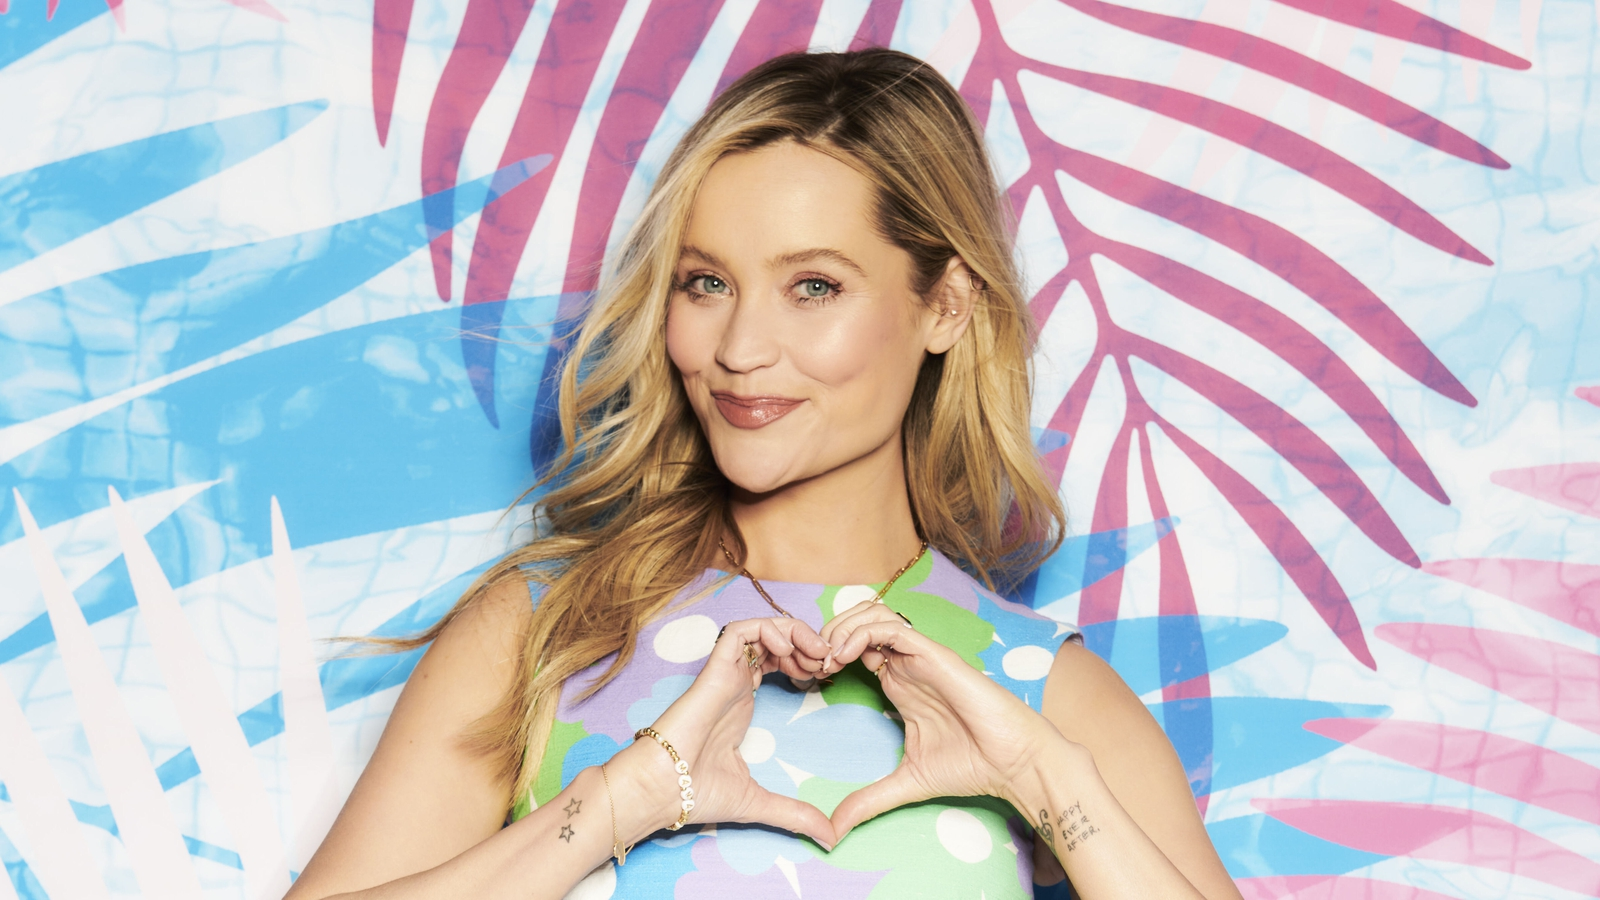 Laura Whitmore stuns in floral playsuit on Love Island: Aftersun